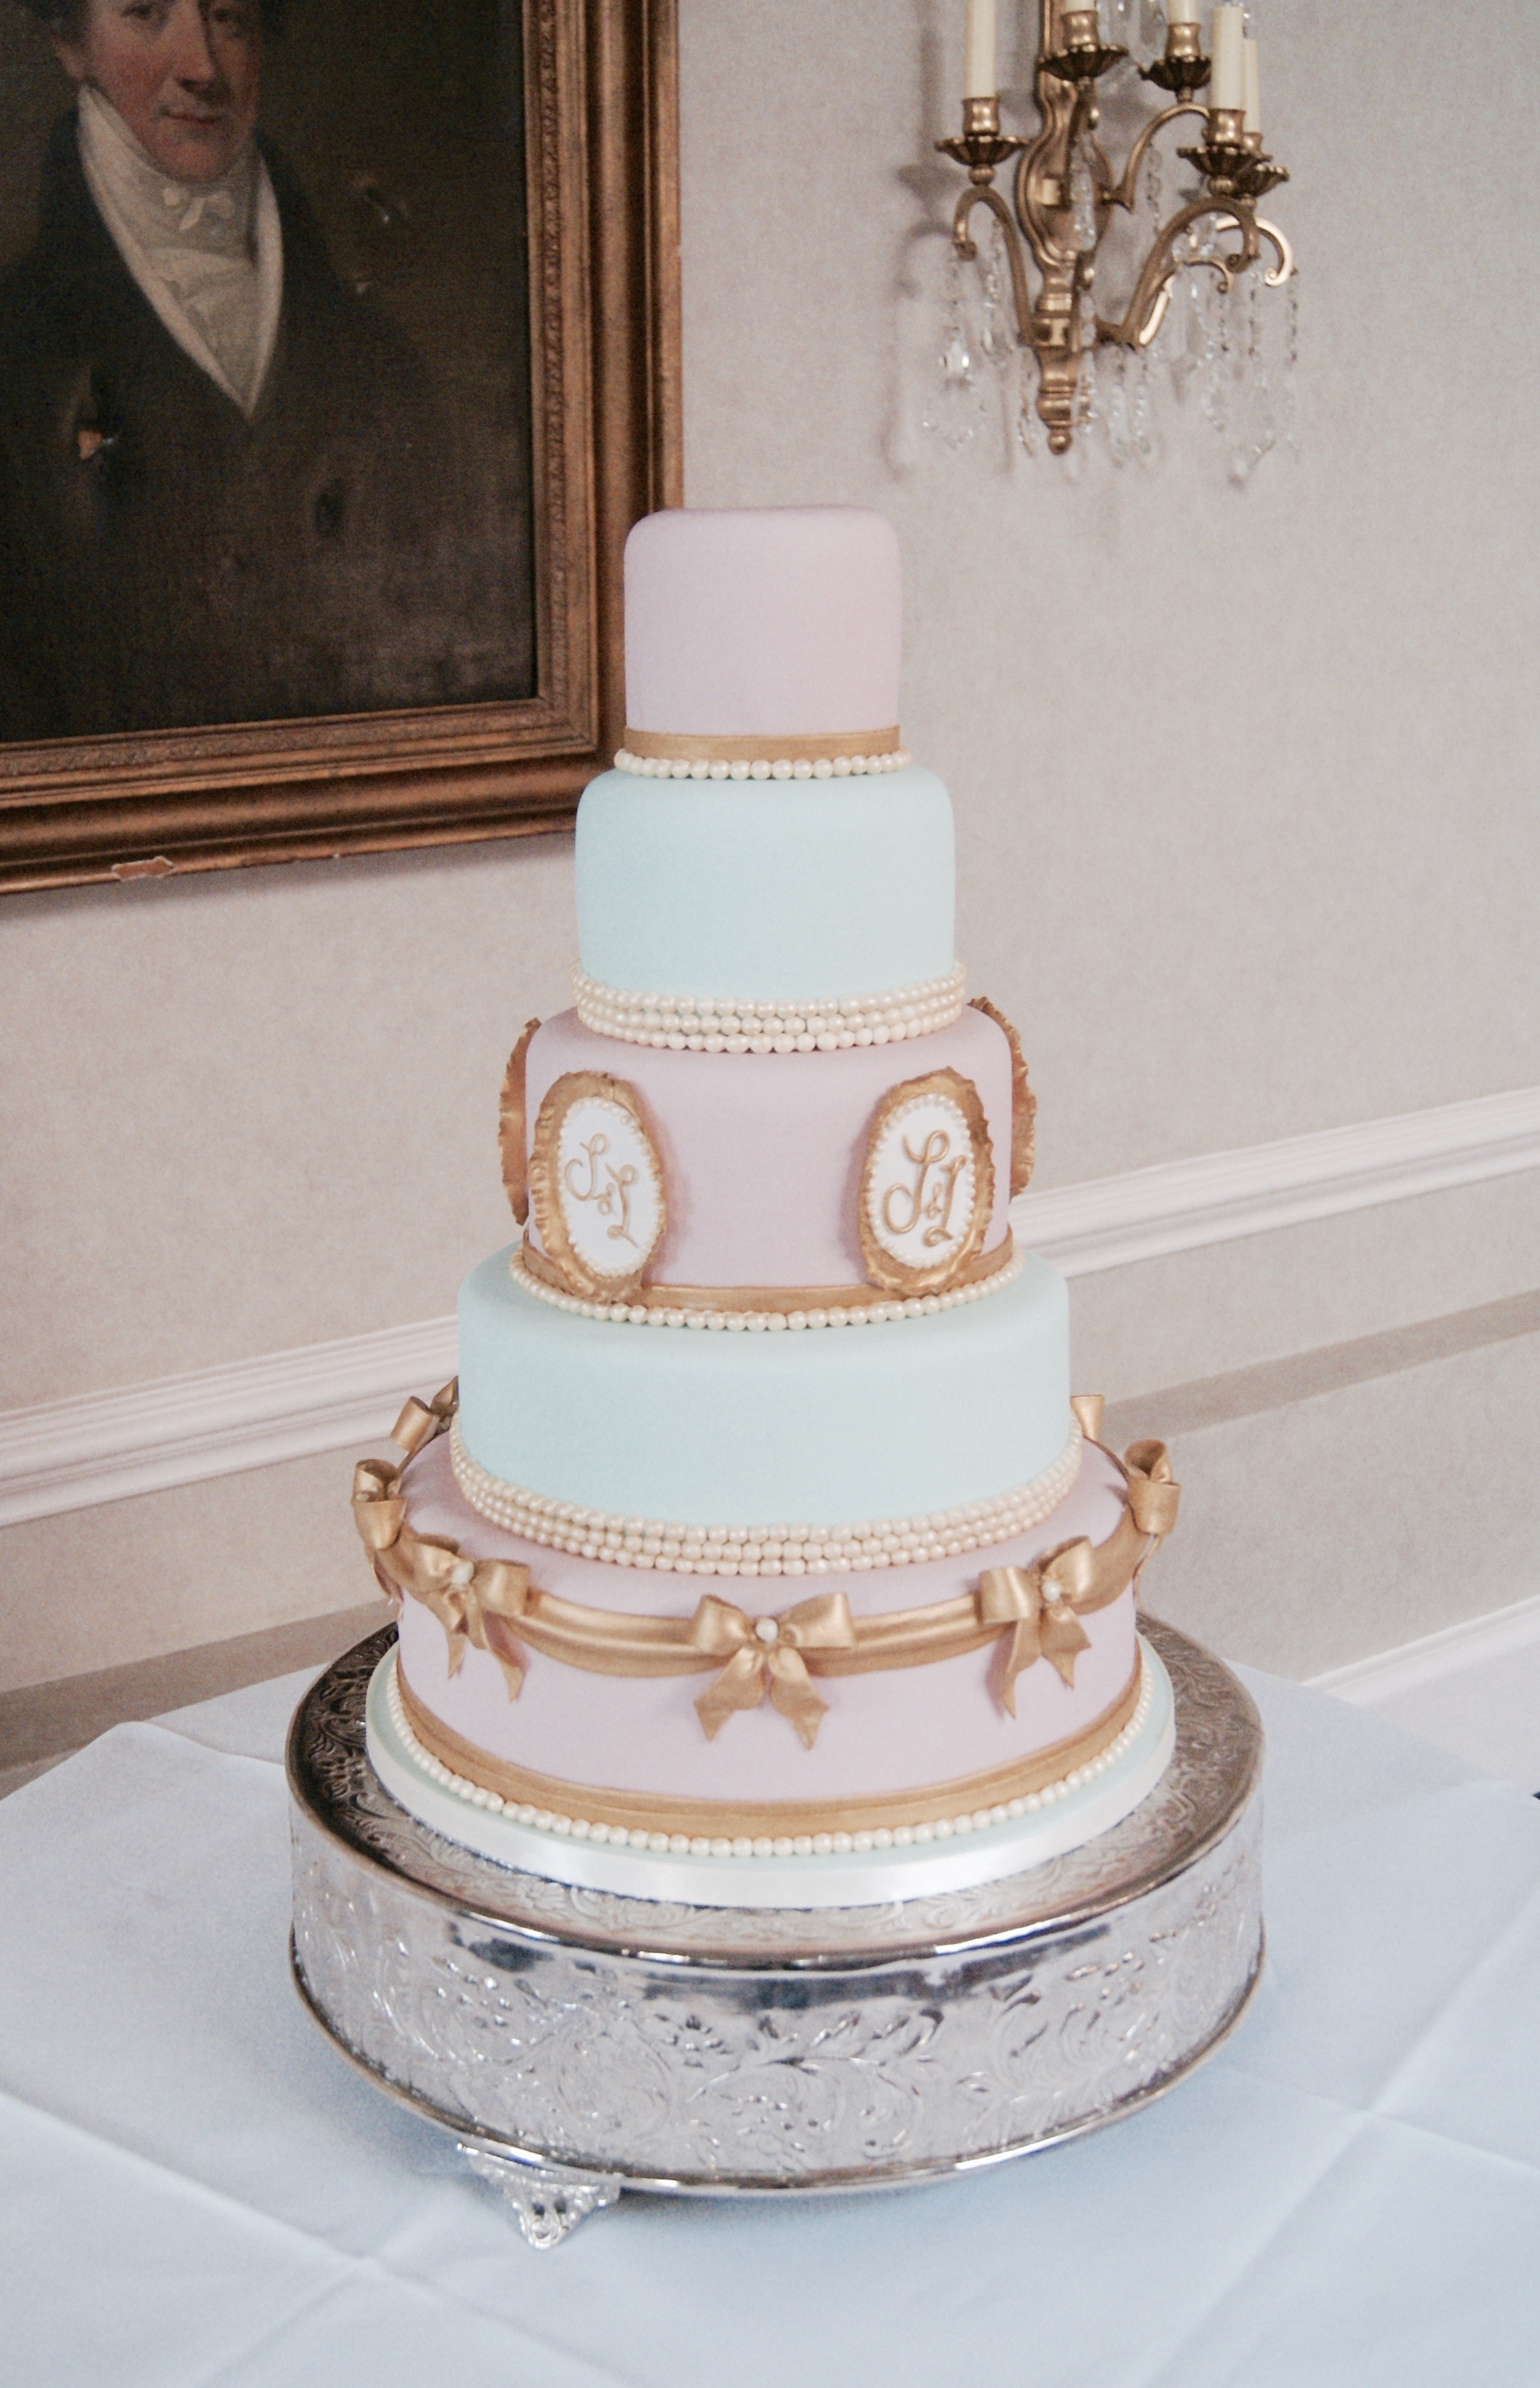 creative wedding cakes kent - hall of cakes